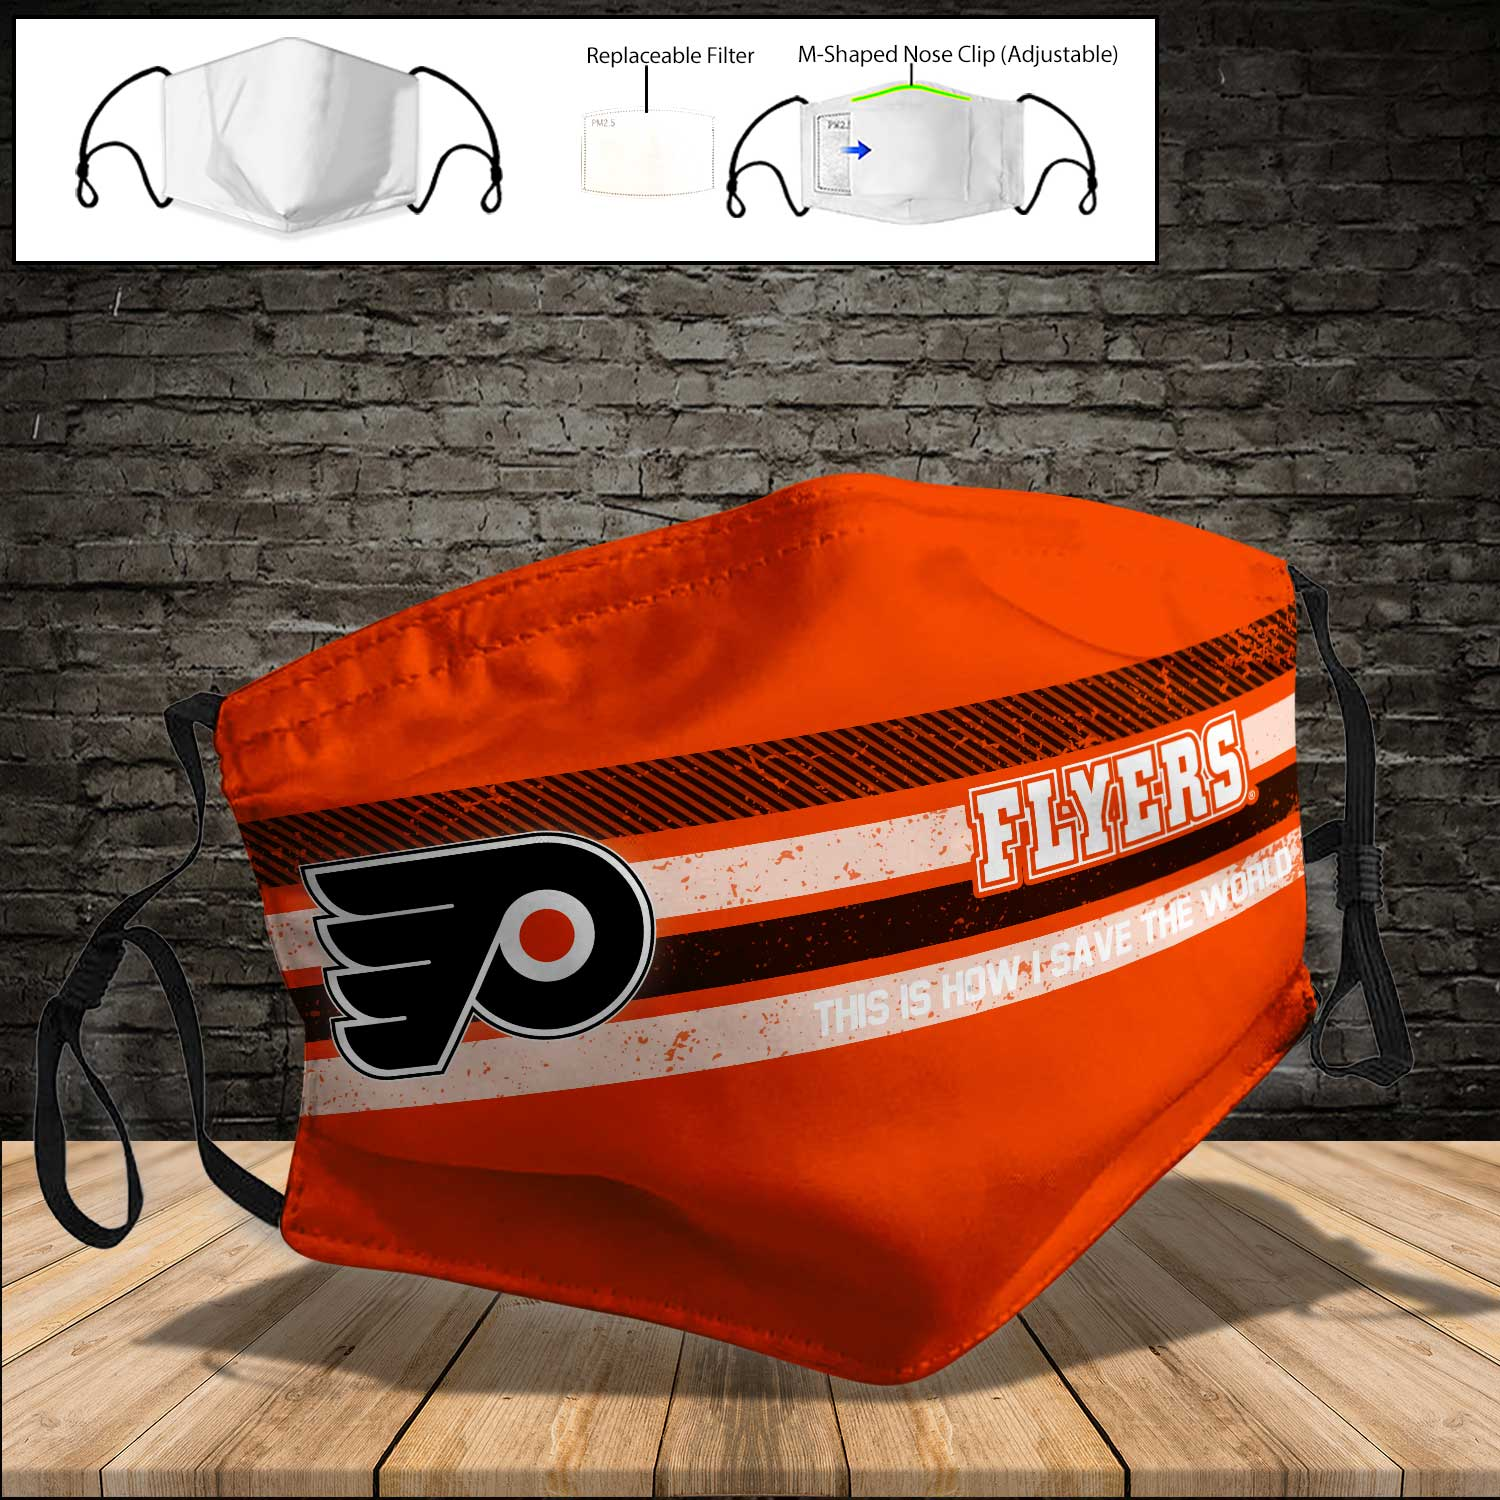 Philadelphia flyers this is how i save the world full printing face mask 4